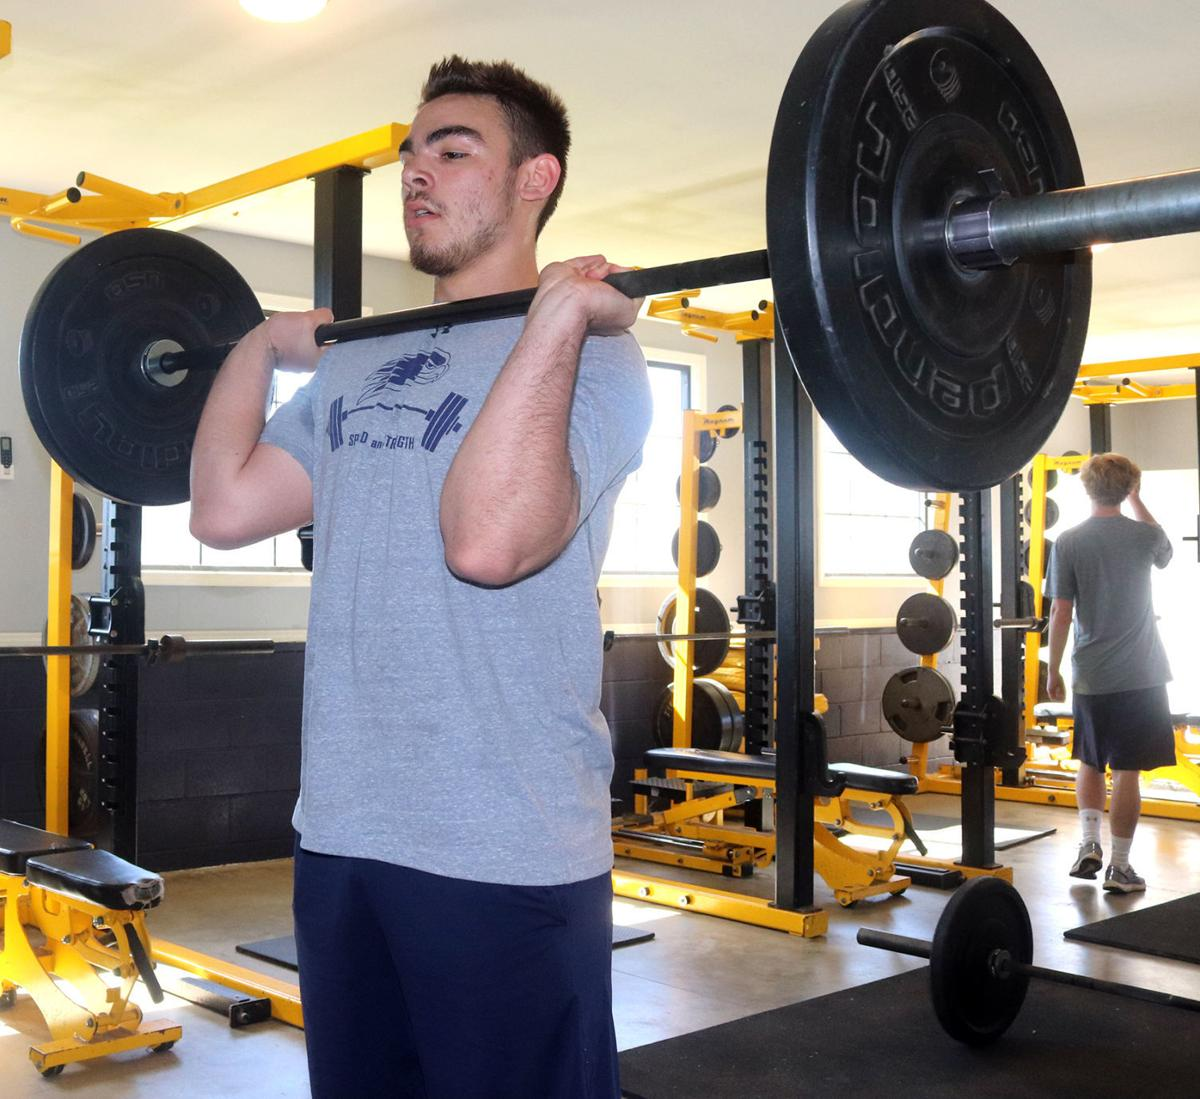 Passion for performance: GCS strength and conditioning program